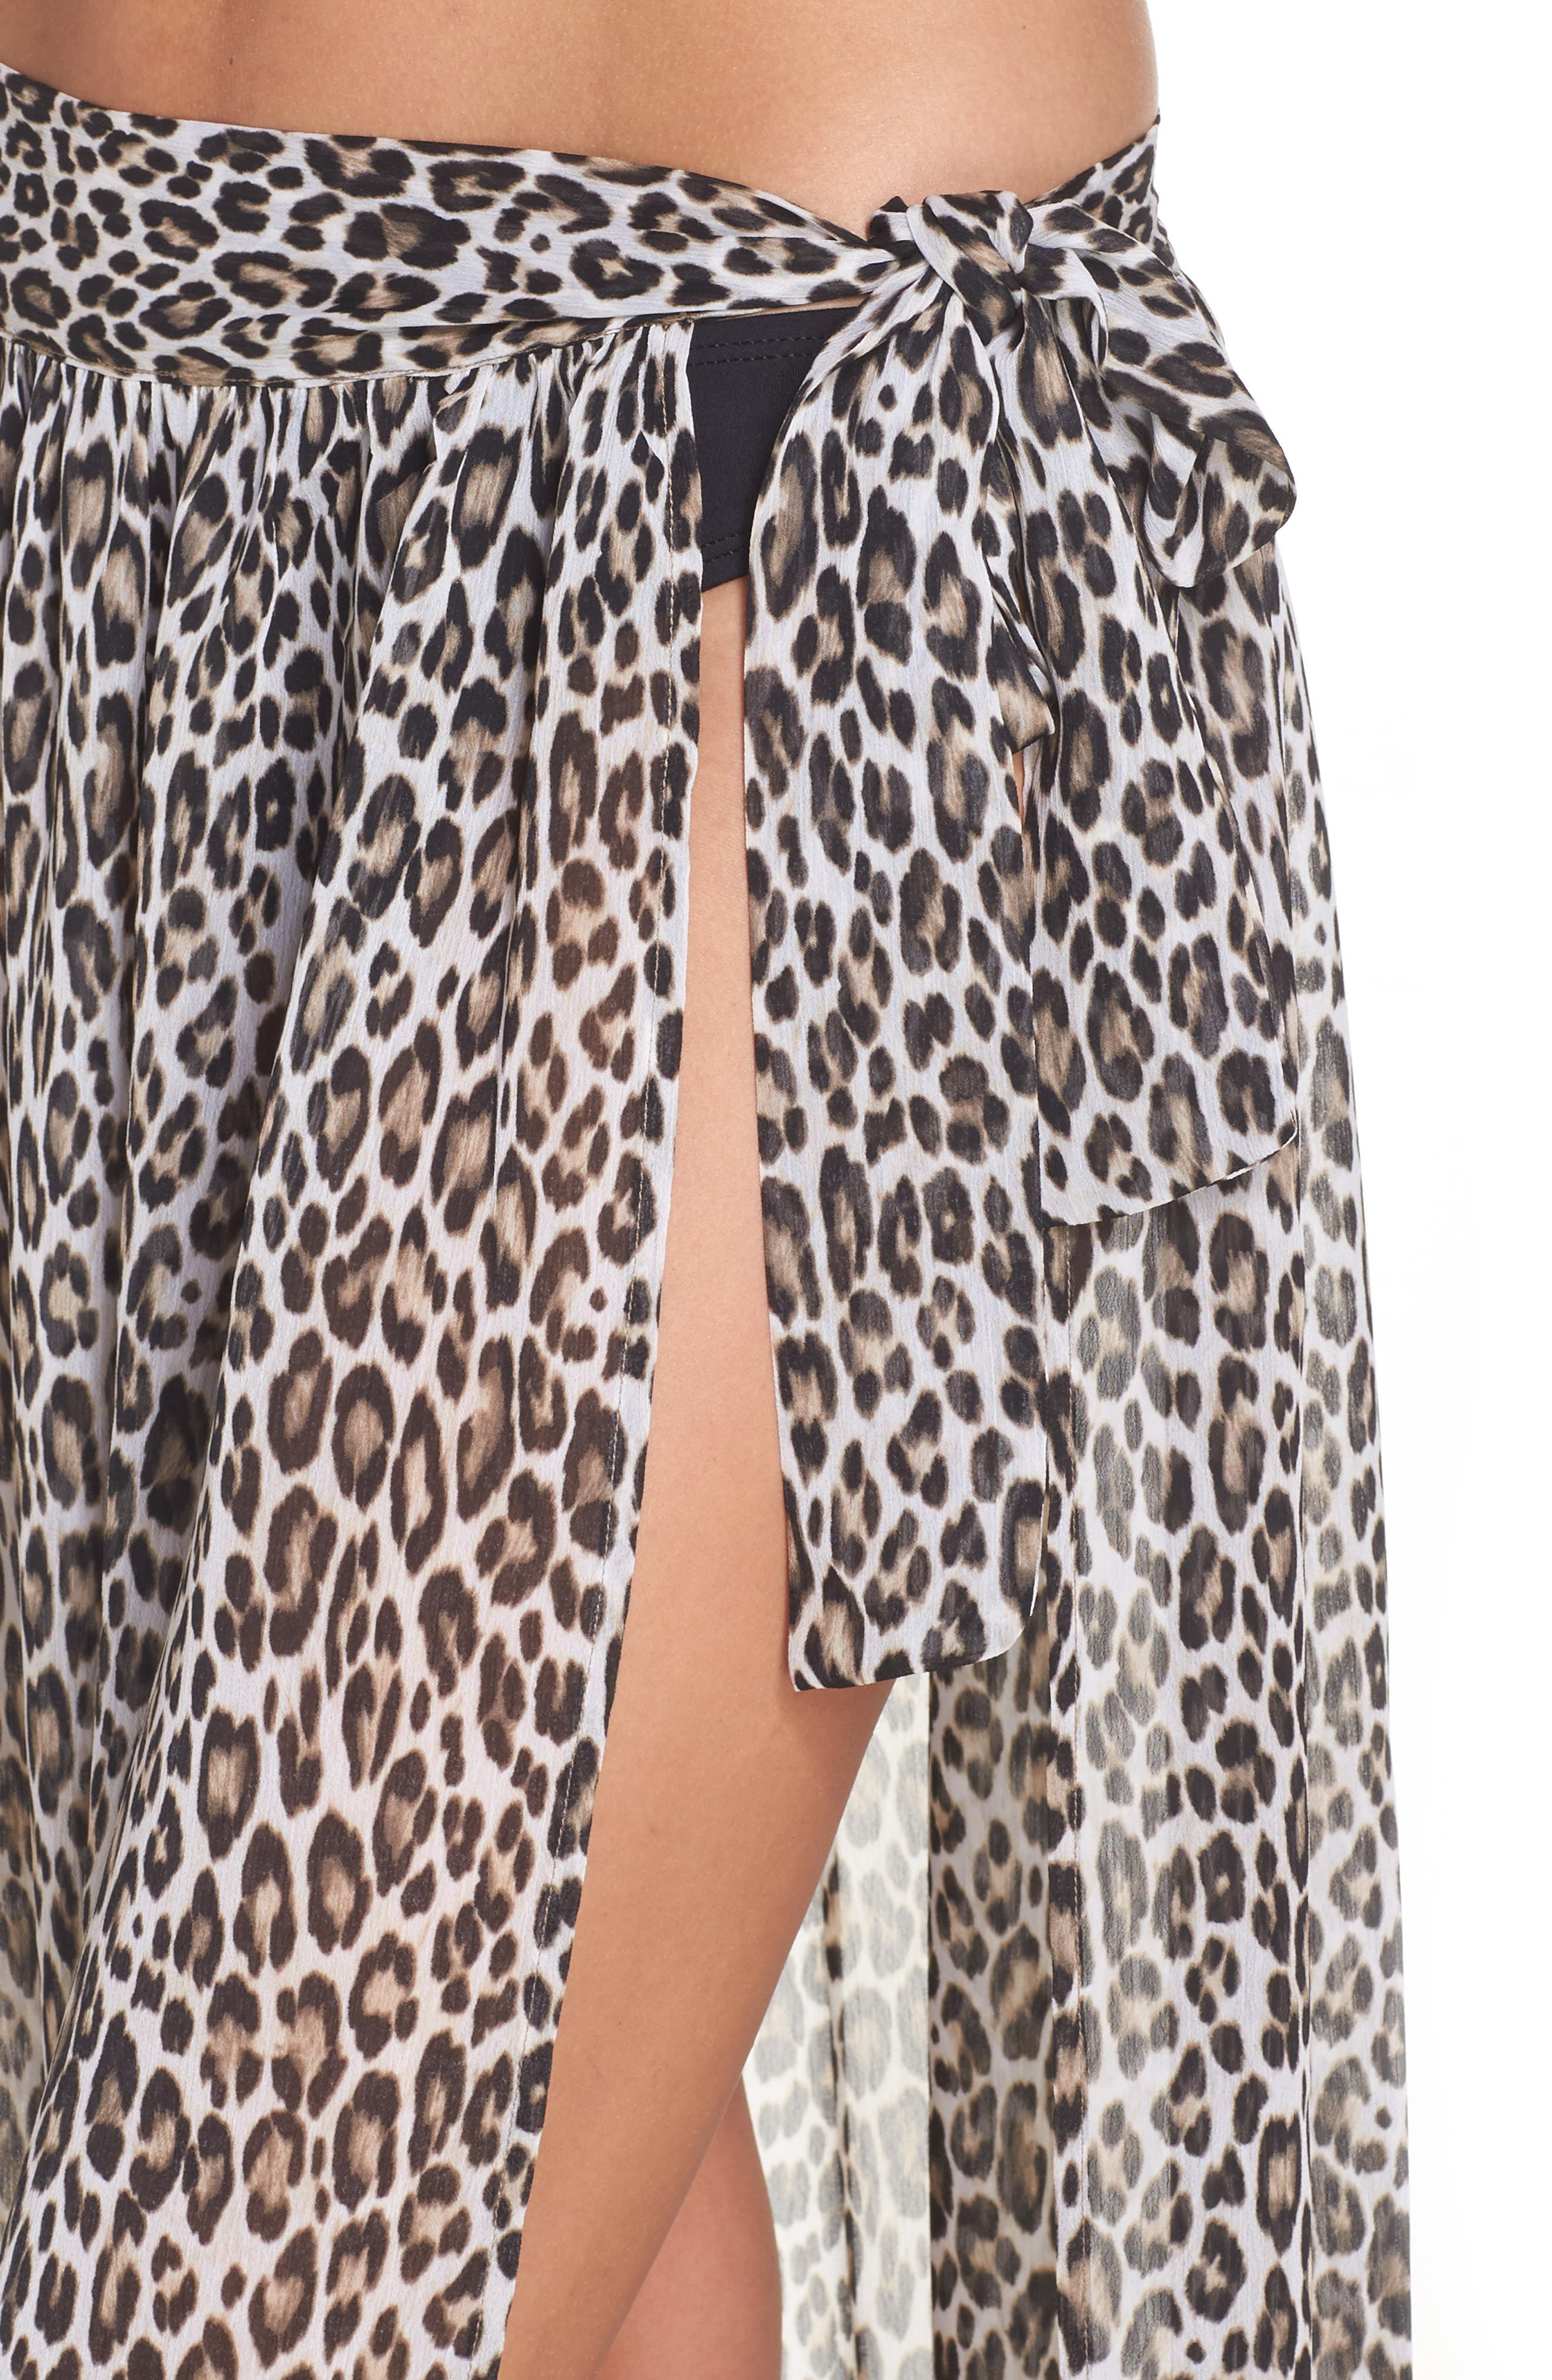 Cat's Meow Cover-Up Maxi Skirt,                             Alternate thumbnail 4, color,                             Handlewood